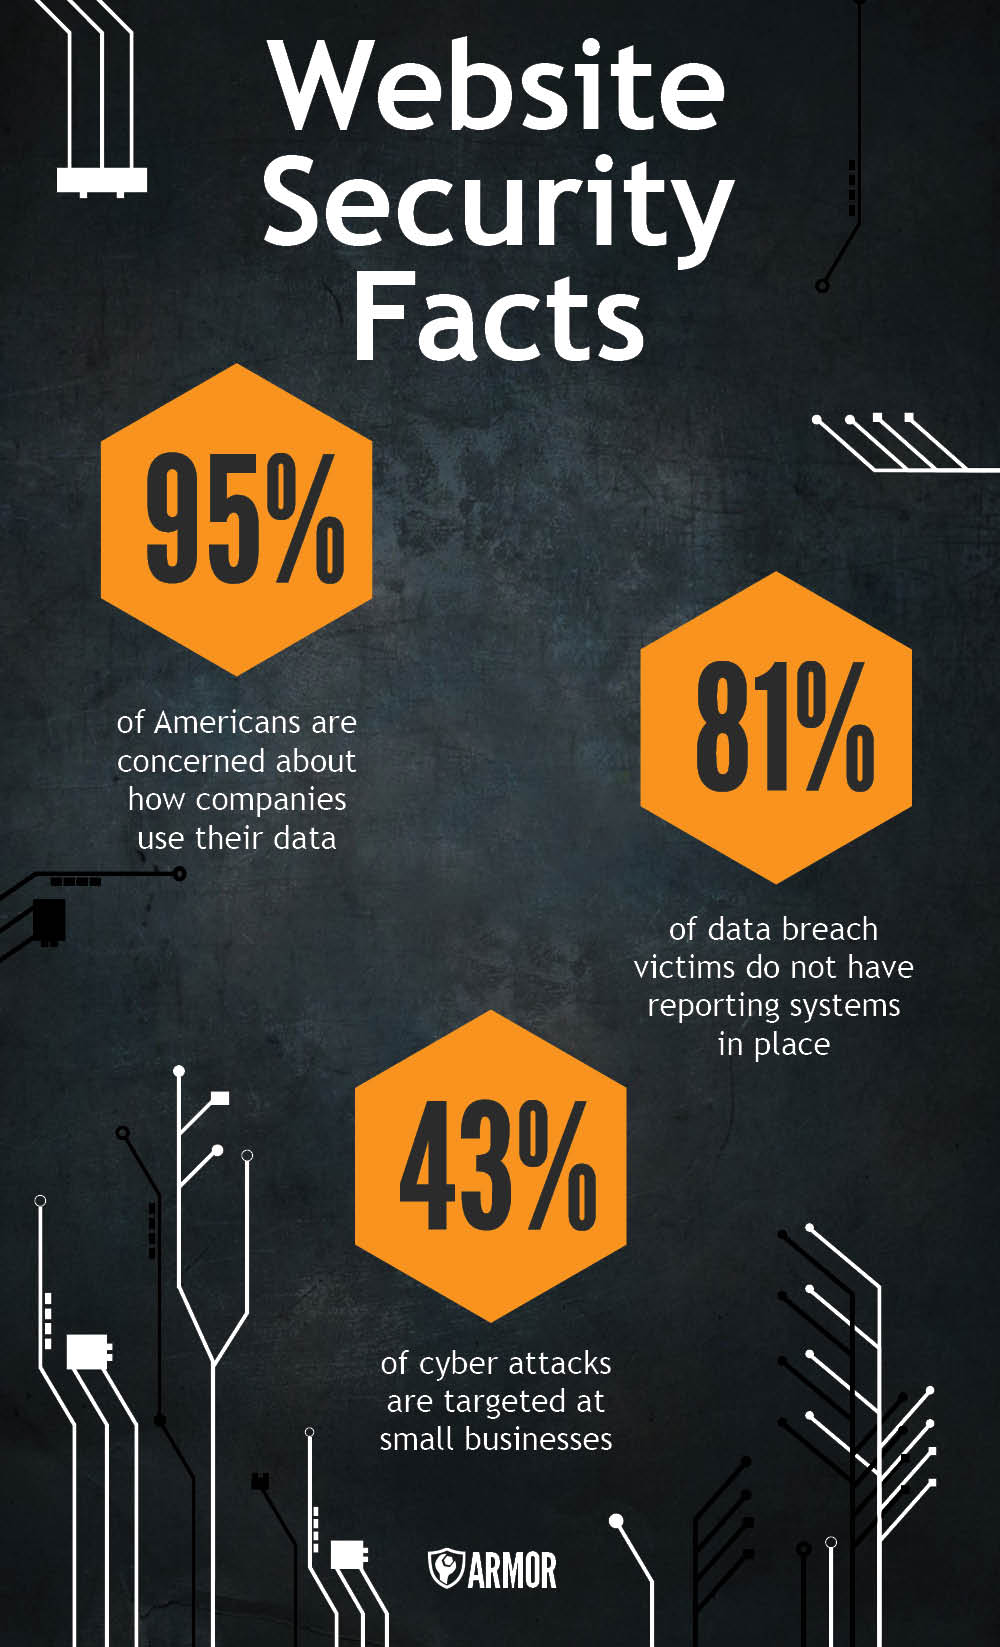 95% of Americans are concernted about how companies user their data. 81% of data breach victims do not have reporting systems in place. 43% of cyber attacks are targeted at small businesses